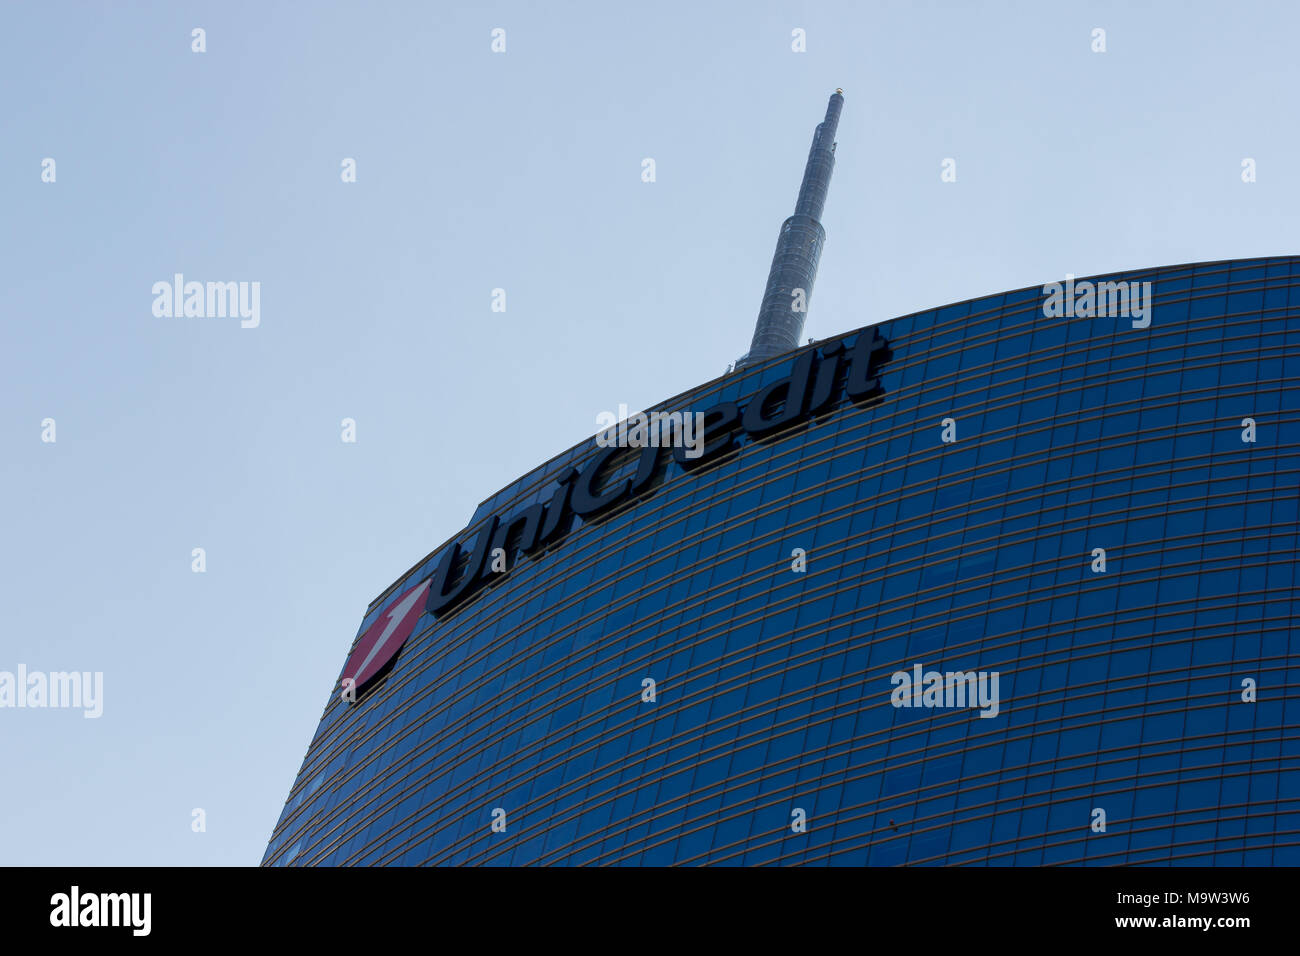 The Unicredit skyscraper Tower, detail, Milan, Italy Stock Photo